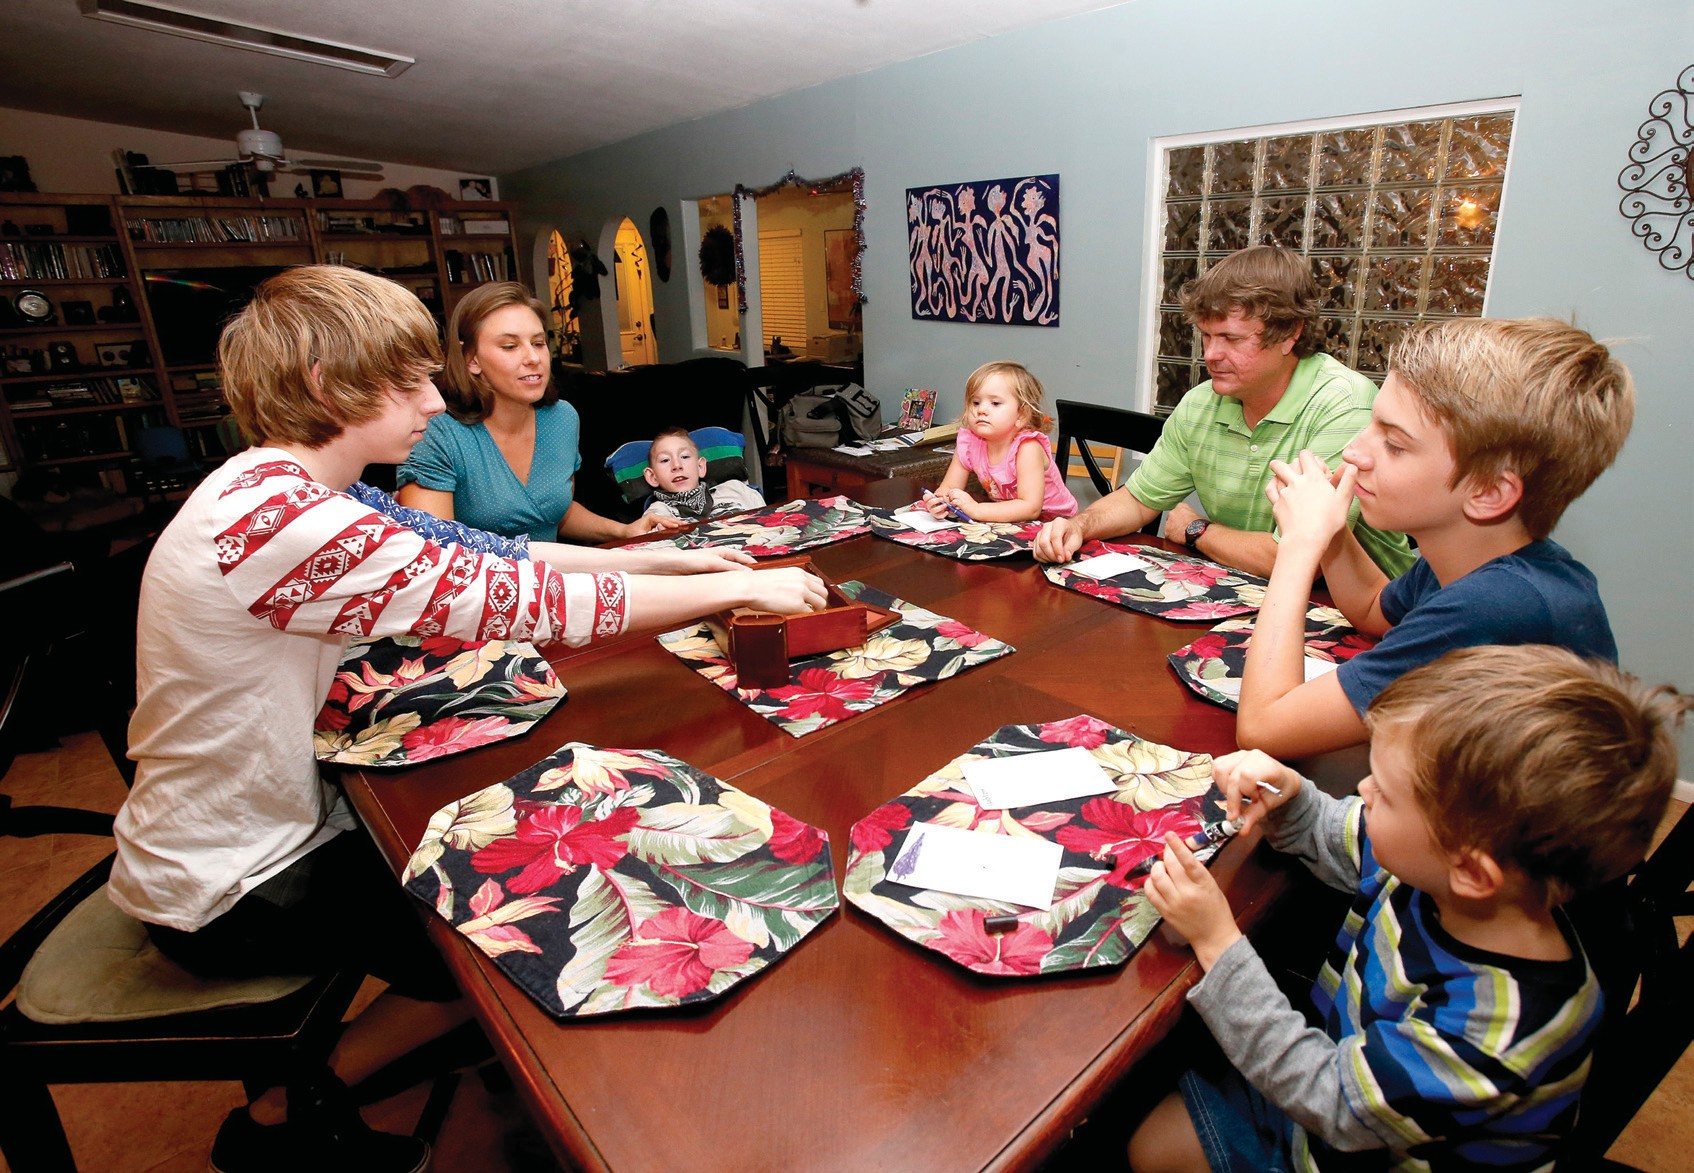 """In this Wednesday photo, pictured from left to right, are, Jo Armstrong, Julie Armstrong, Skylar Armstrong, Amelia Anderson, Nathan Anderson, Westley Armstrong and Dean Anderson sit together for a game at their home in Tucson, Ariz. At 42 with a blended family of five, Nathan Anderson runs an acupuncture clinic with his wife, Julie, also an acupuncturist. Combined, their monthly student loans bills approach $1,700. """"More than we spend on groceries and kind of like having a second mortgage,"""" Nathan said."""